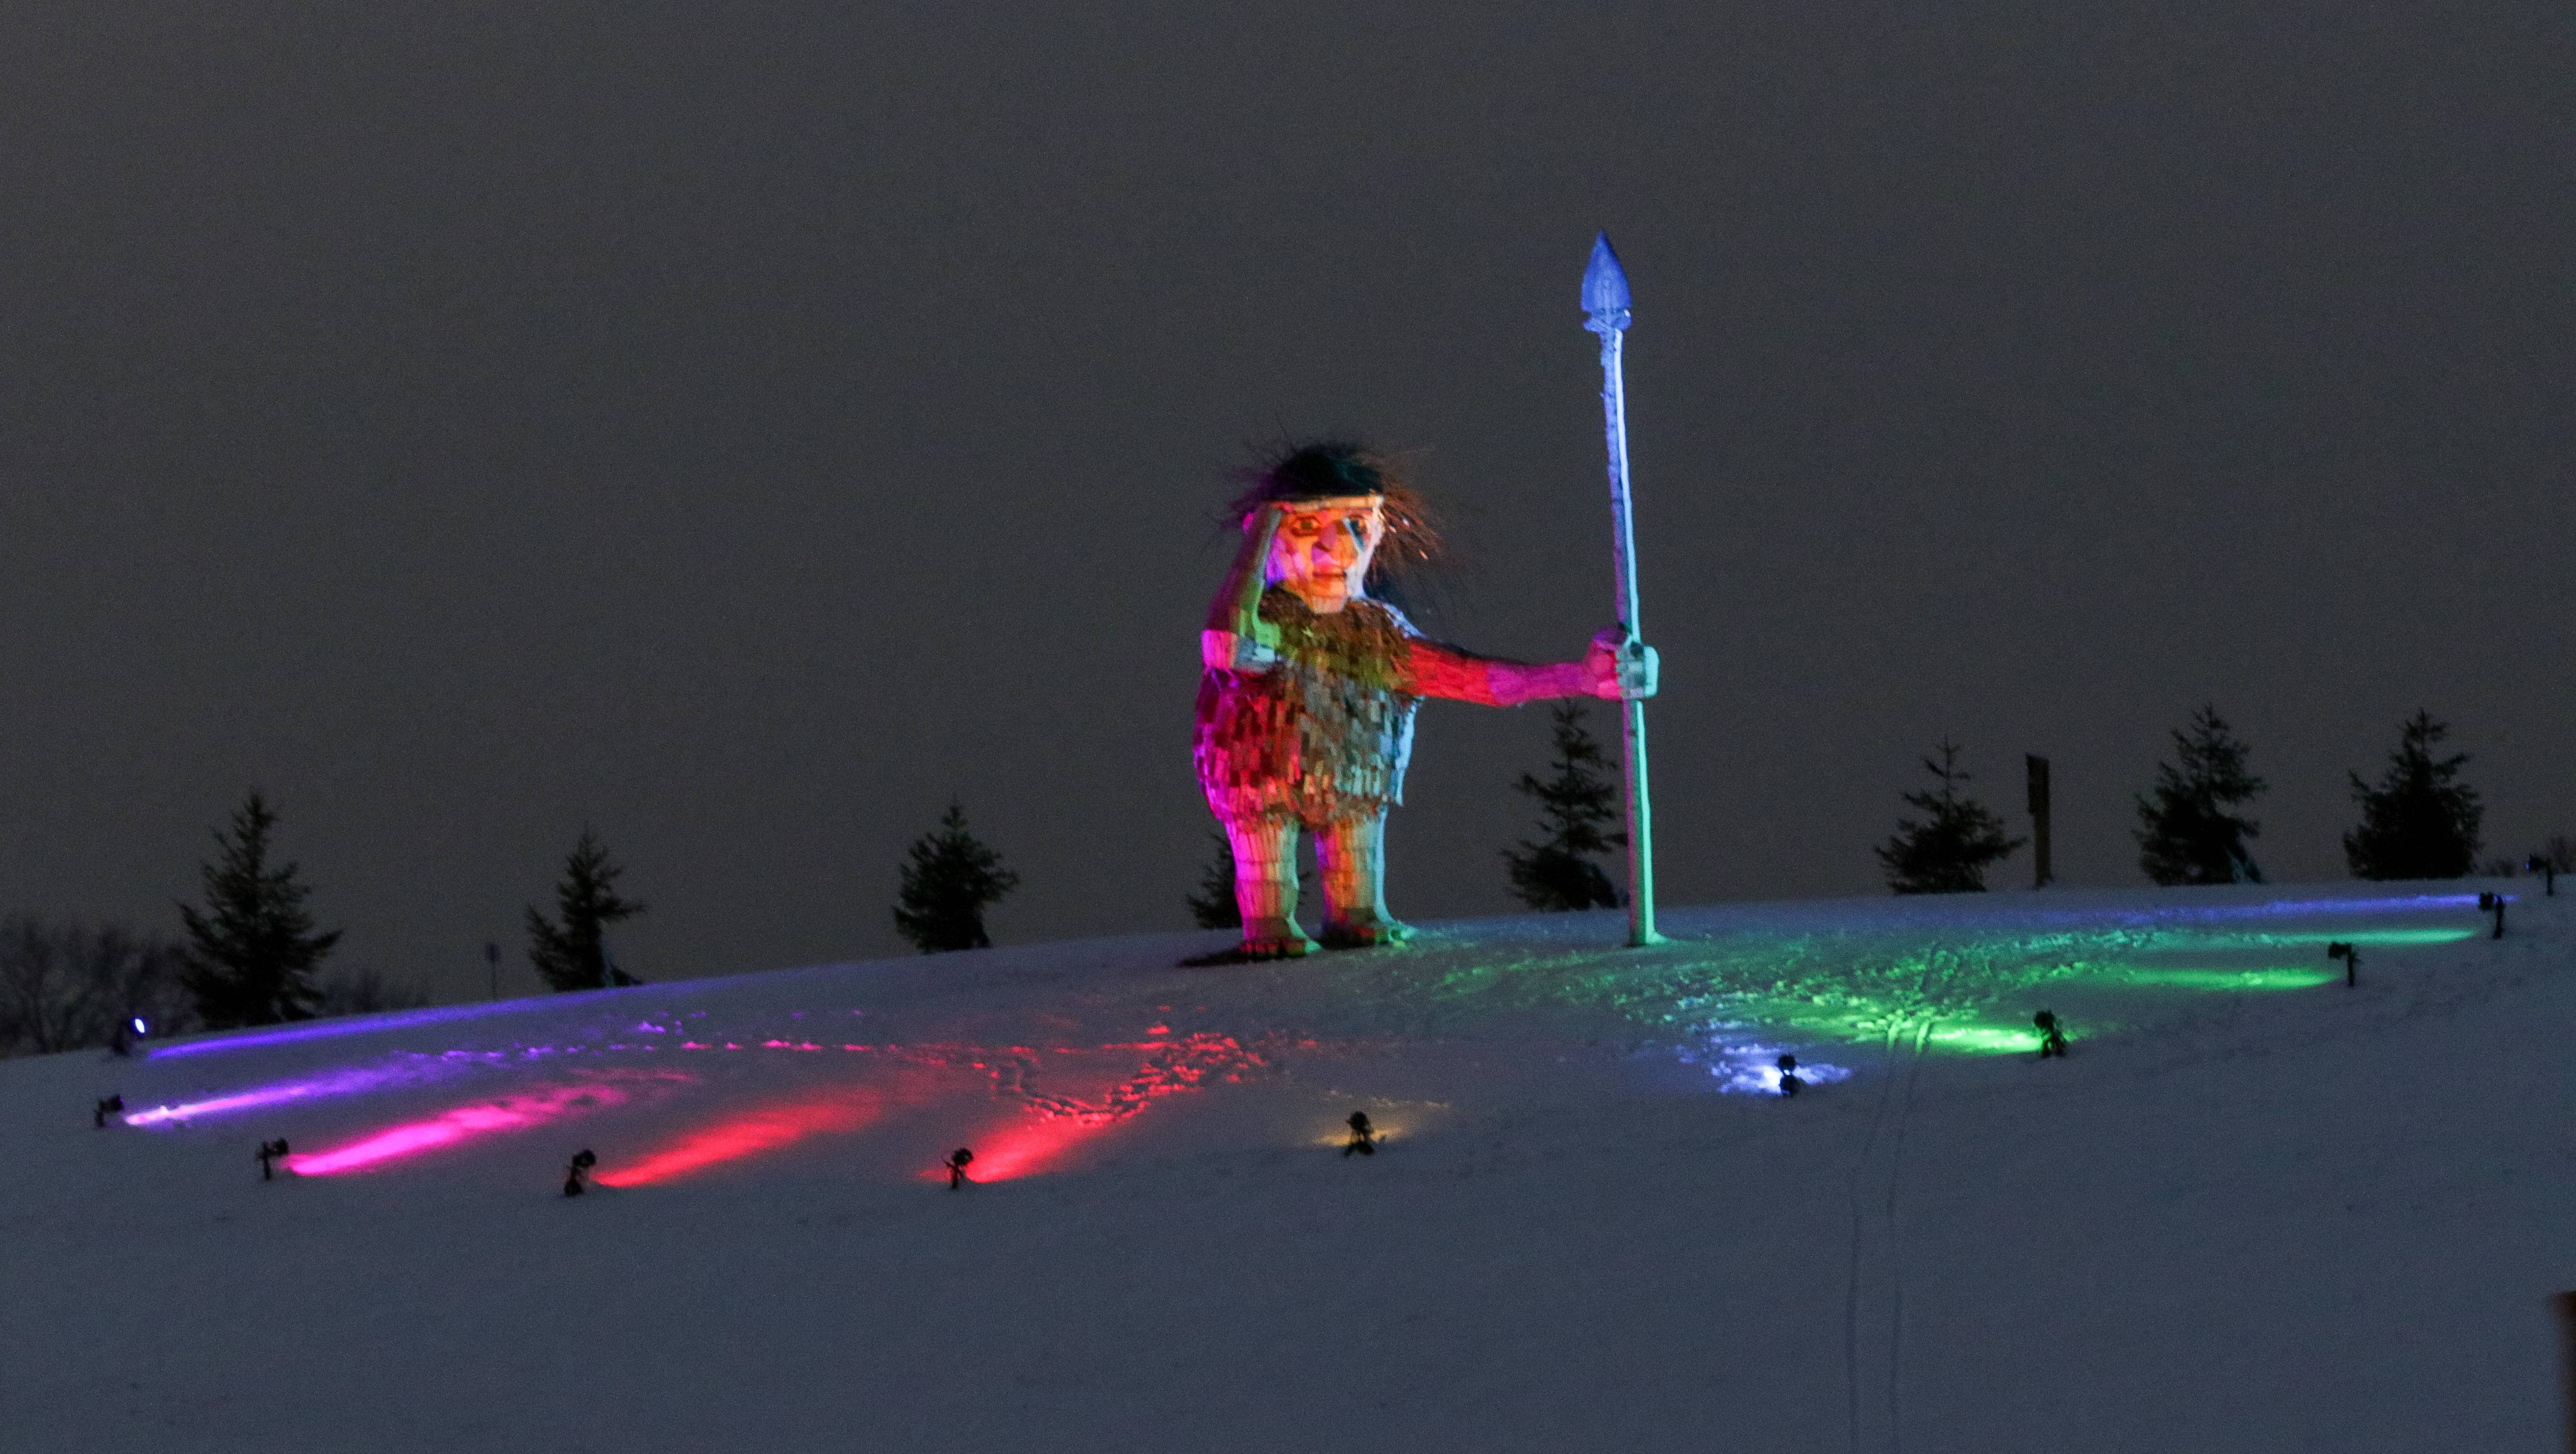 Joe the Guardian, the troll overlooking I-88 in Lisle, is lit up with colorful lights, part of the Illumination at the Morton Arboretum.